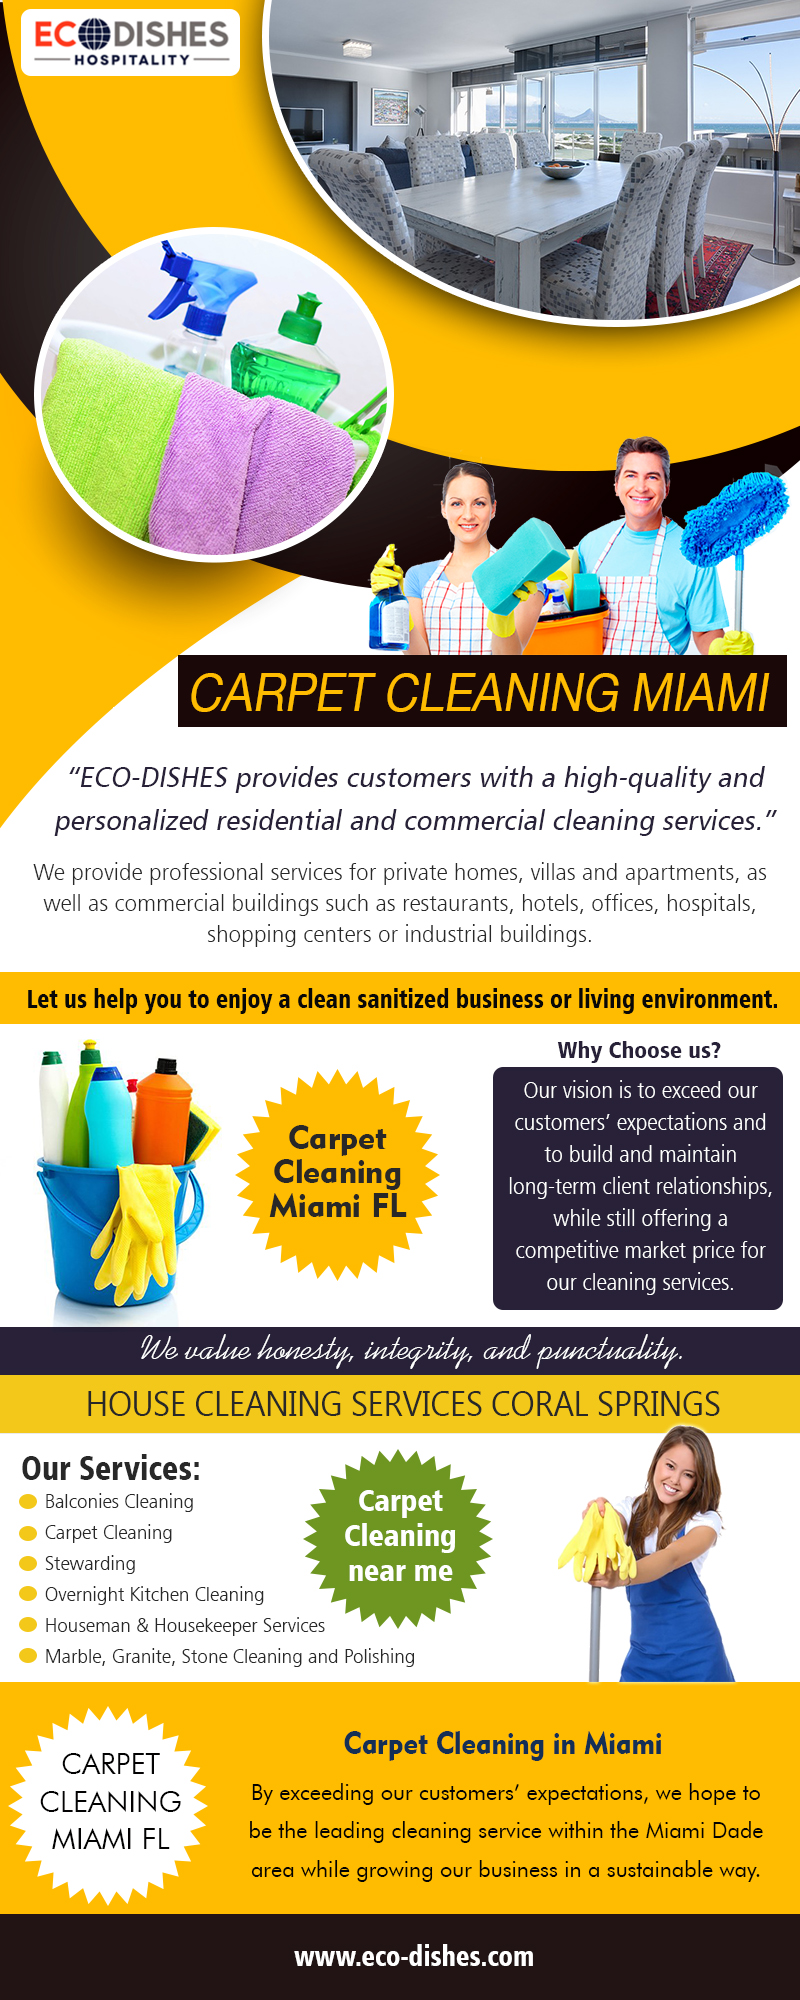 Carpet Cleaning Miami | 3055466638 | eco-dishes.com